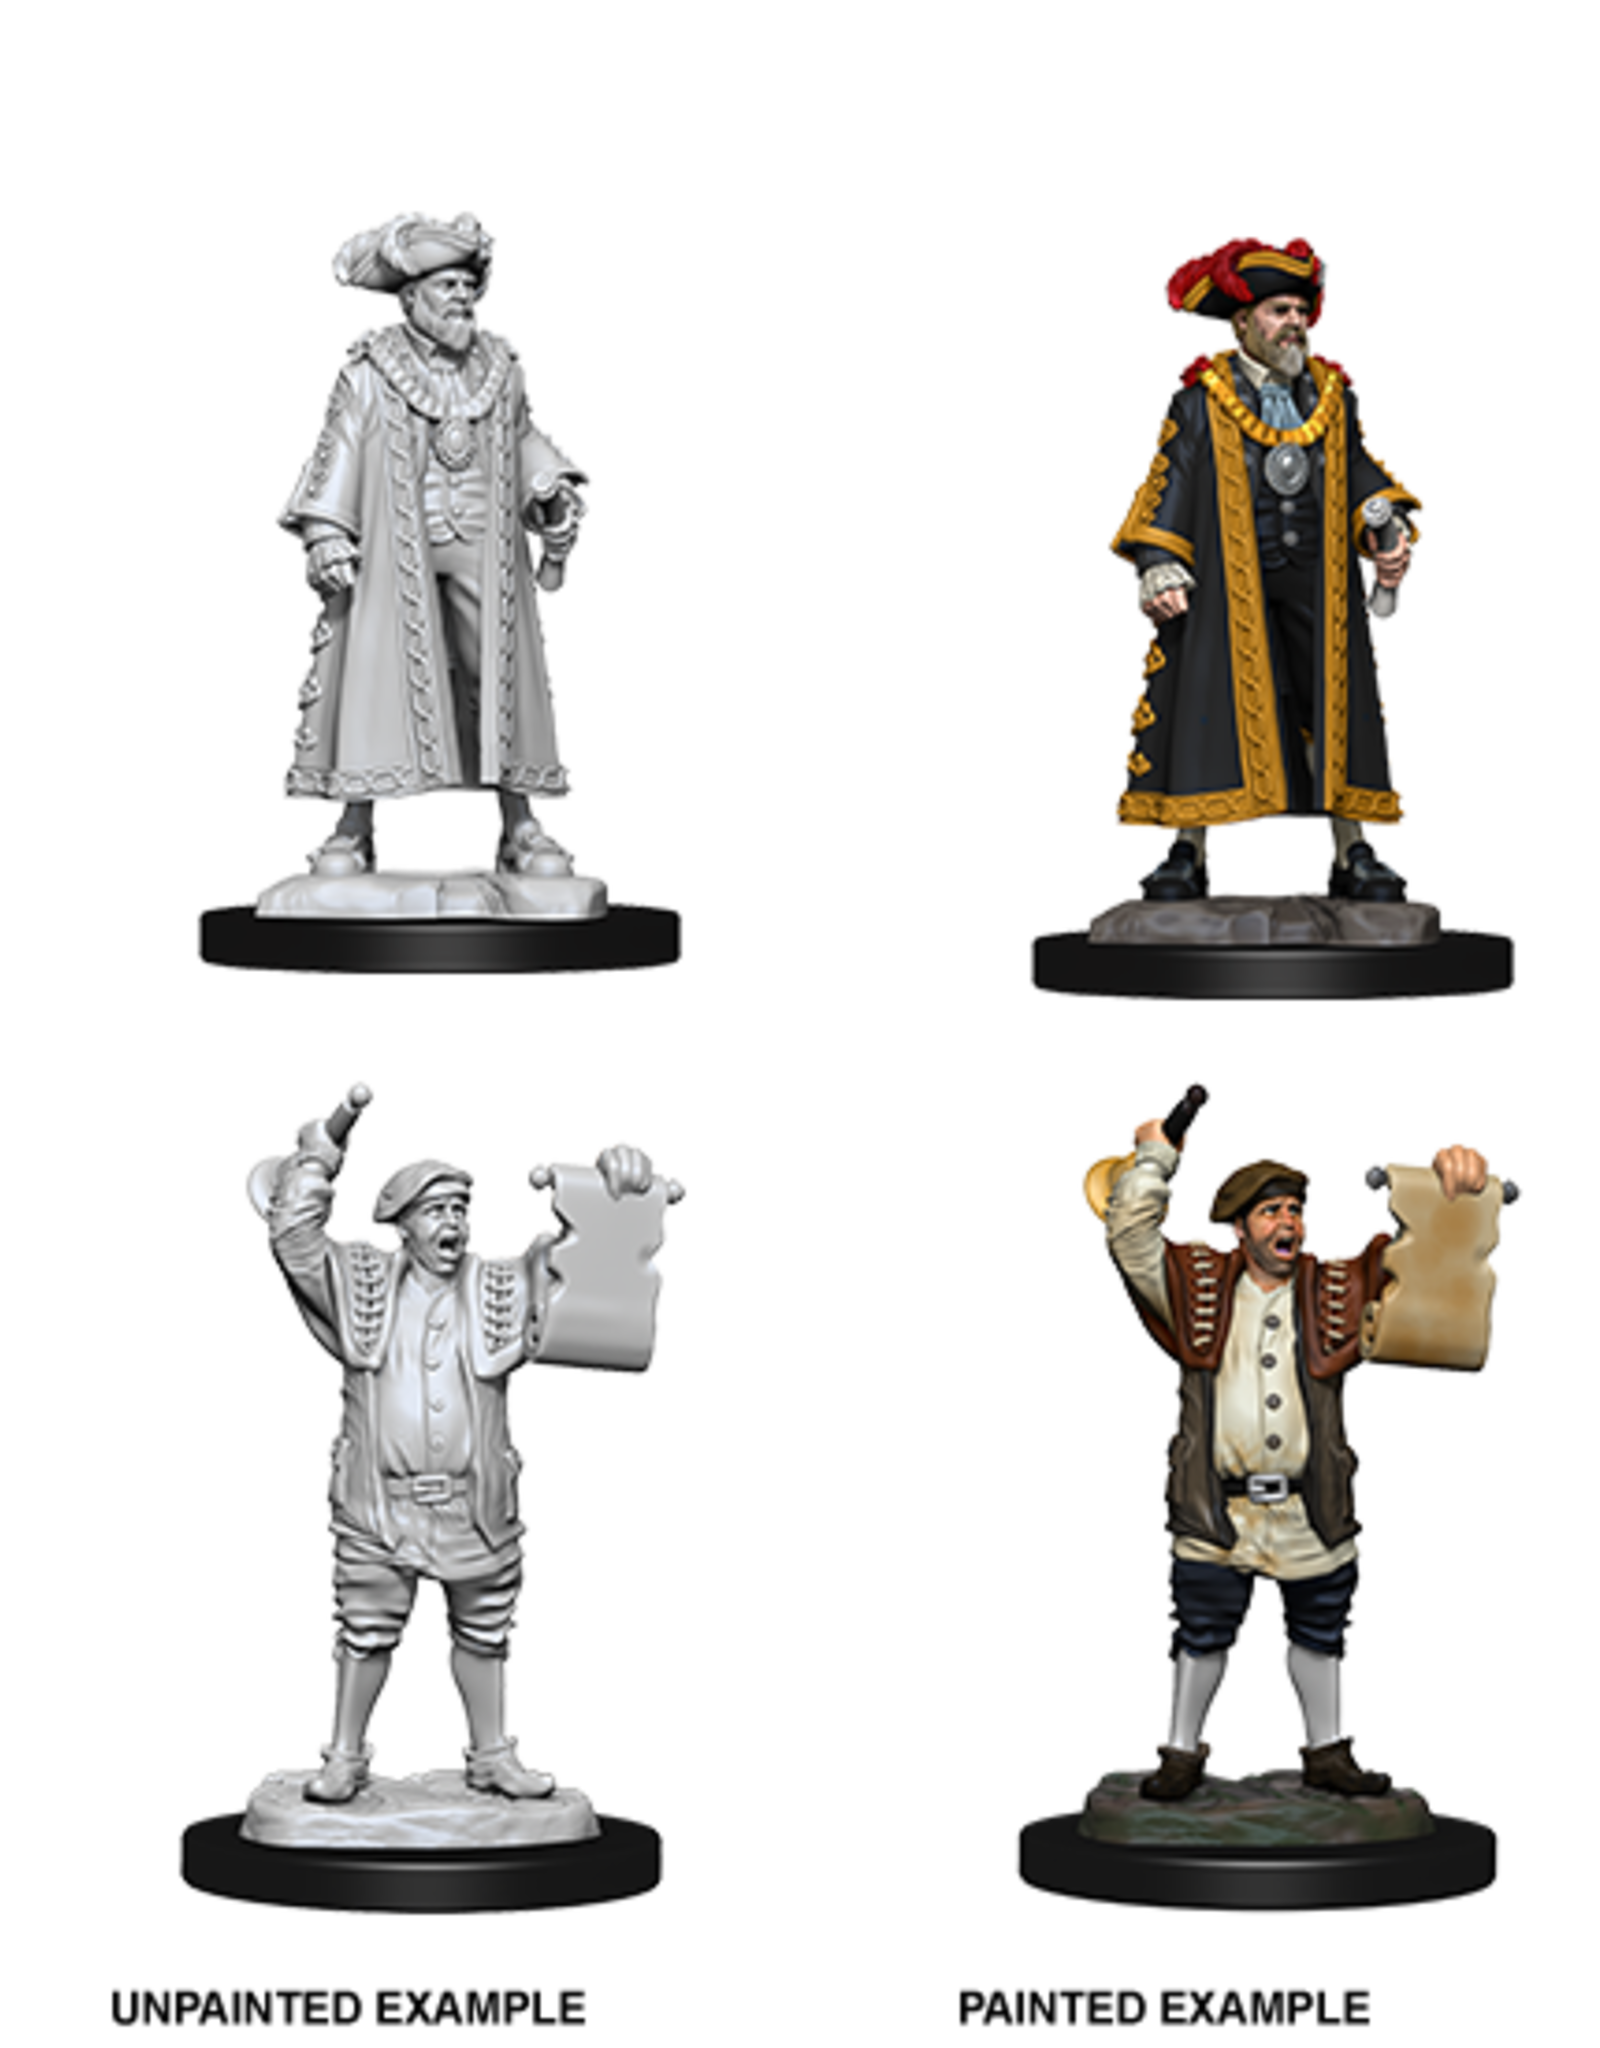 Dungeons & Dragons D&D NMU - Mayor & Town Crier